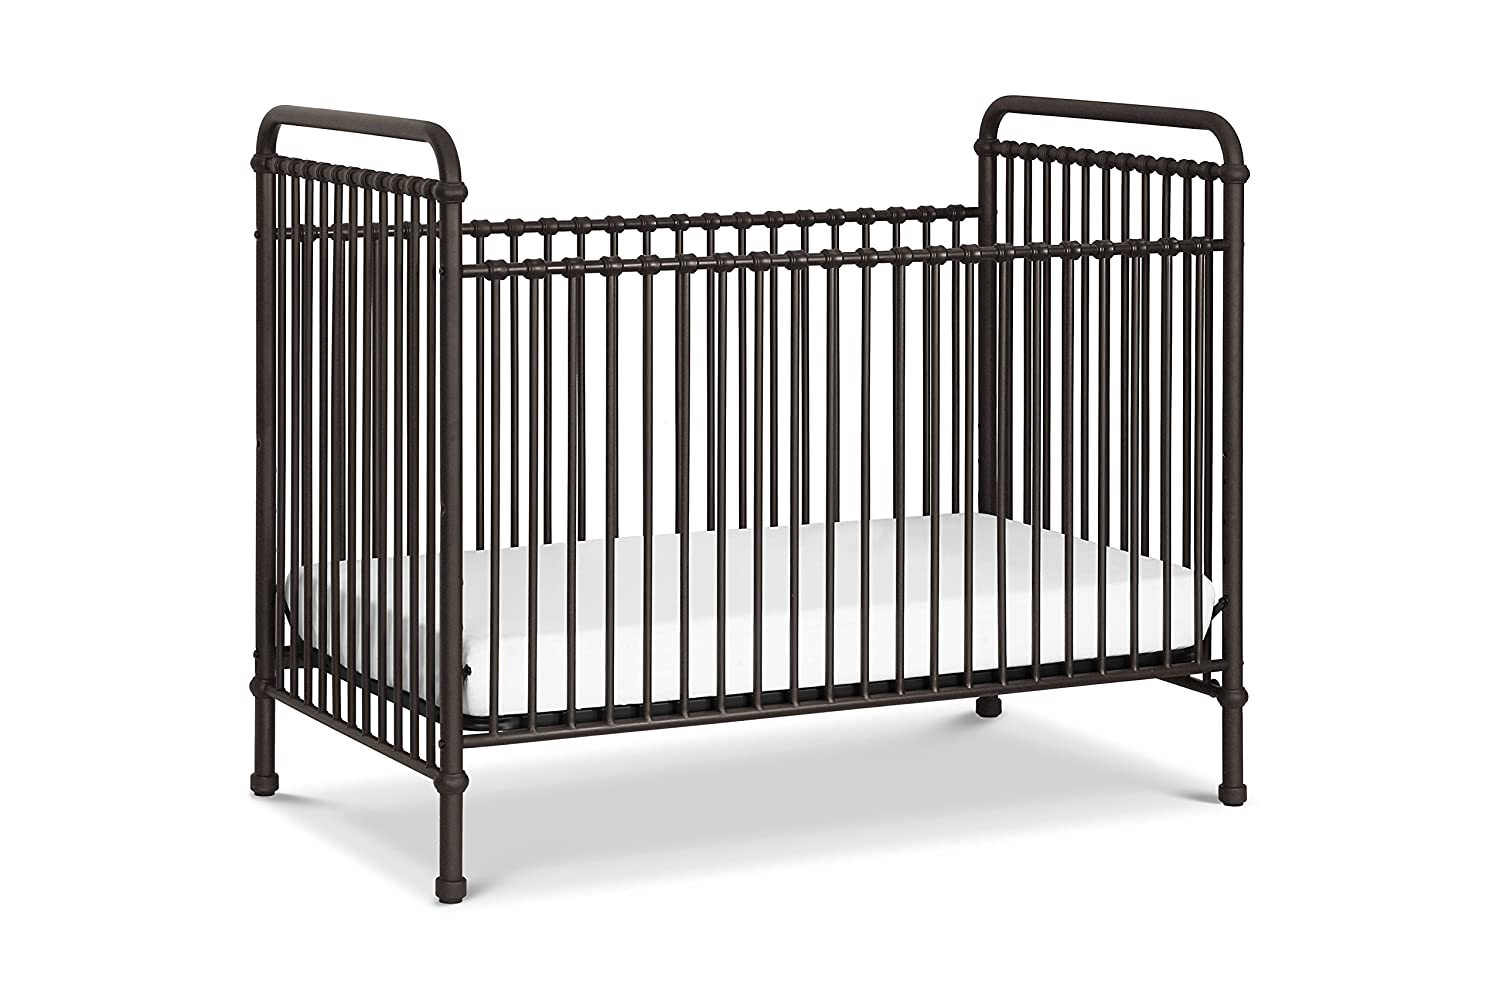 Million Dollar Baby Classic Abigail 3-in-1 Convertible Crib in Vintage Iron